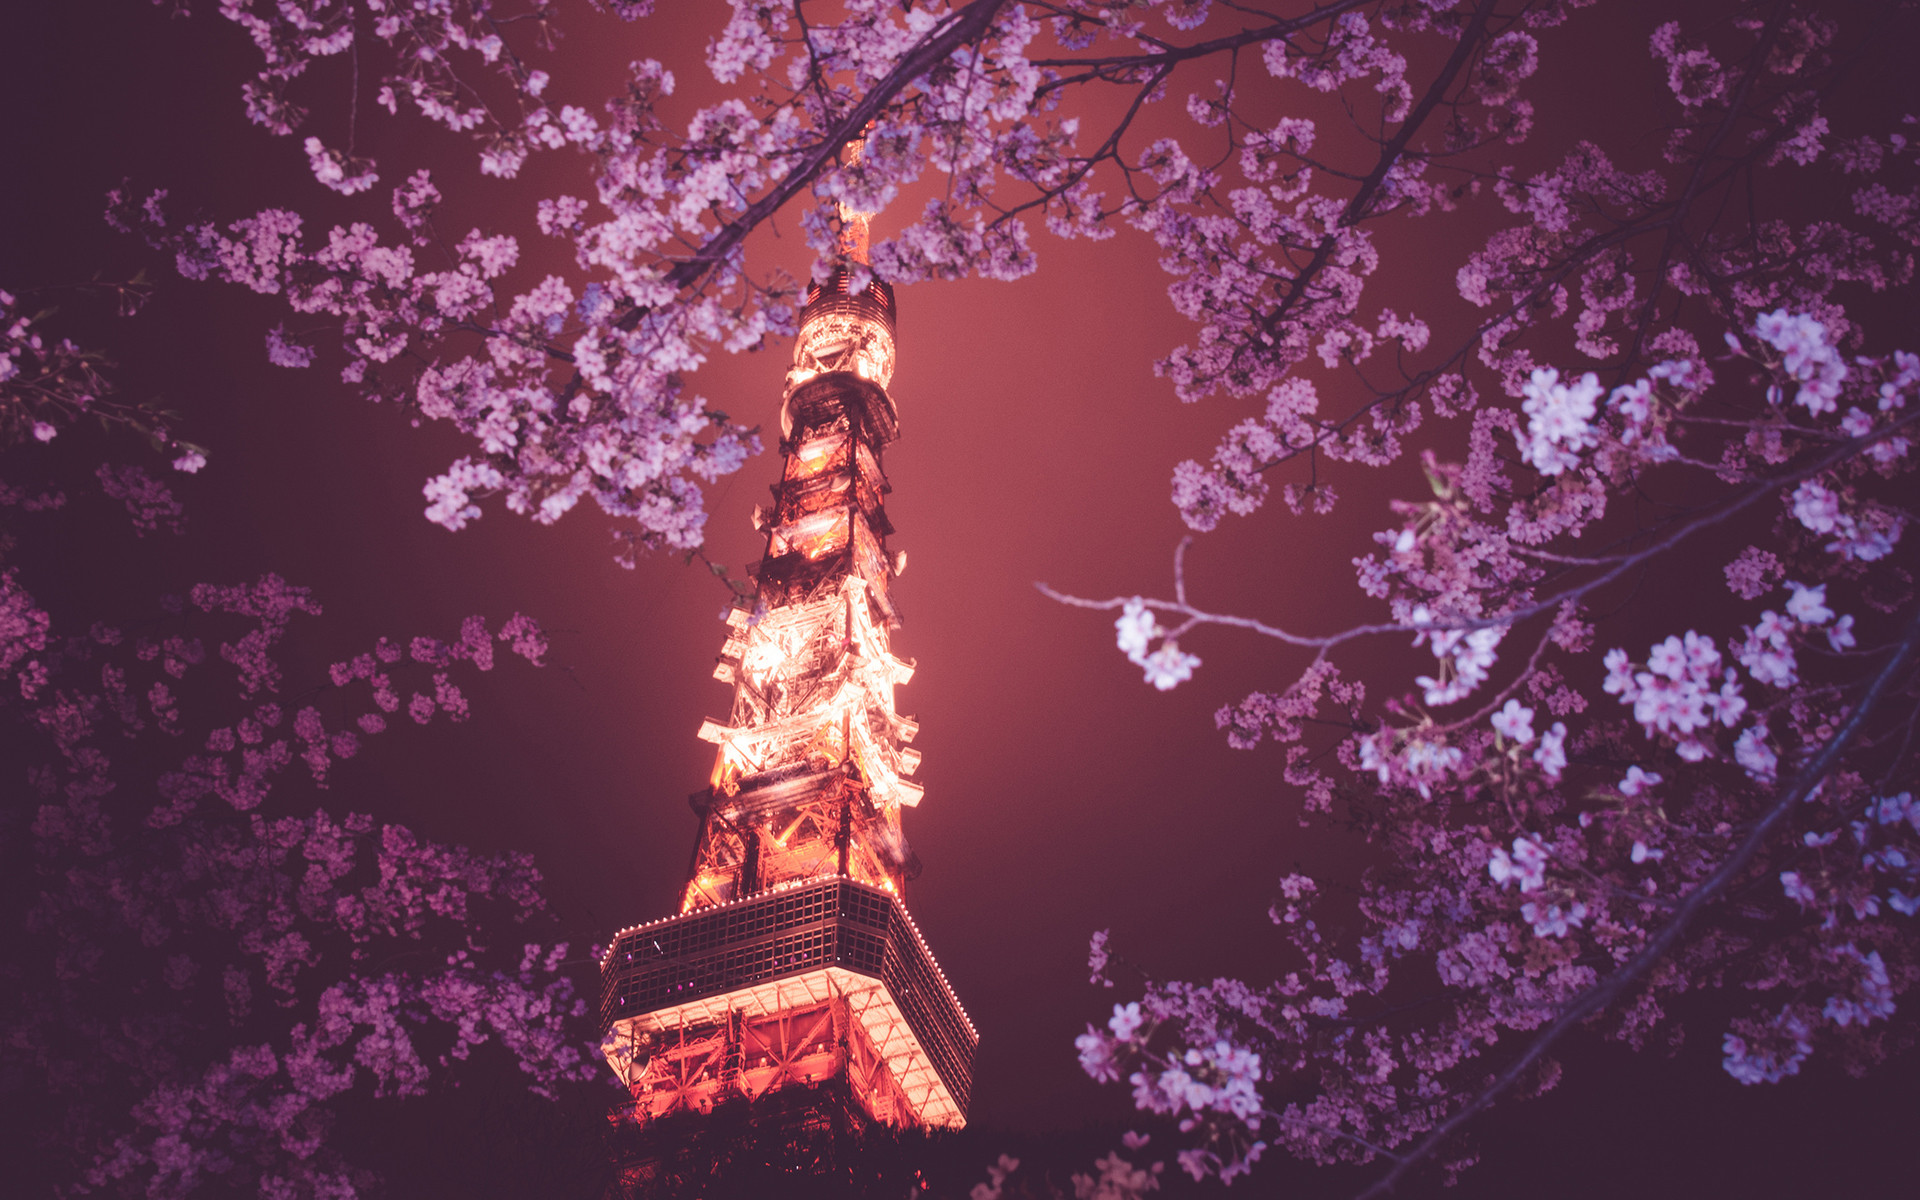 Cherry Blossom Tree Wallpaper 20 1920x1200 768x480